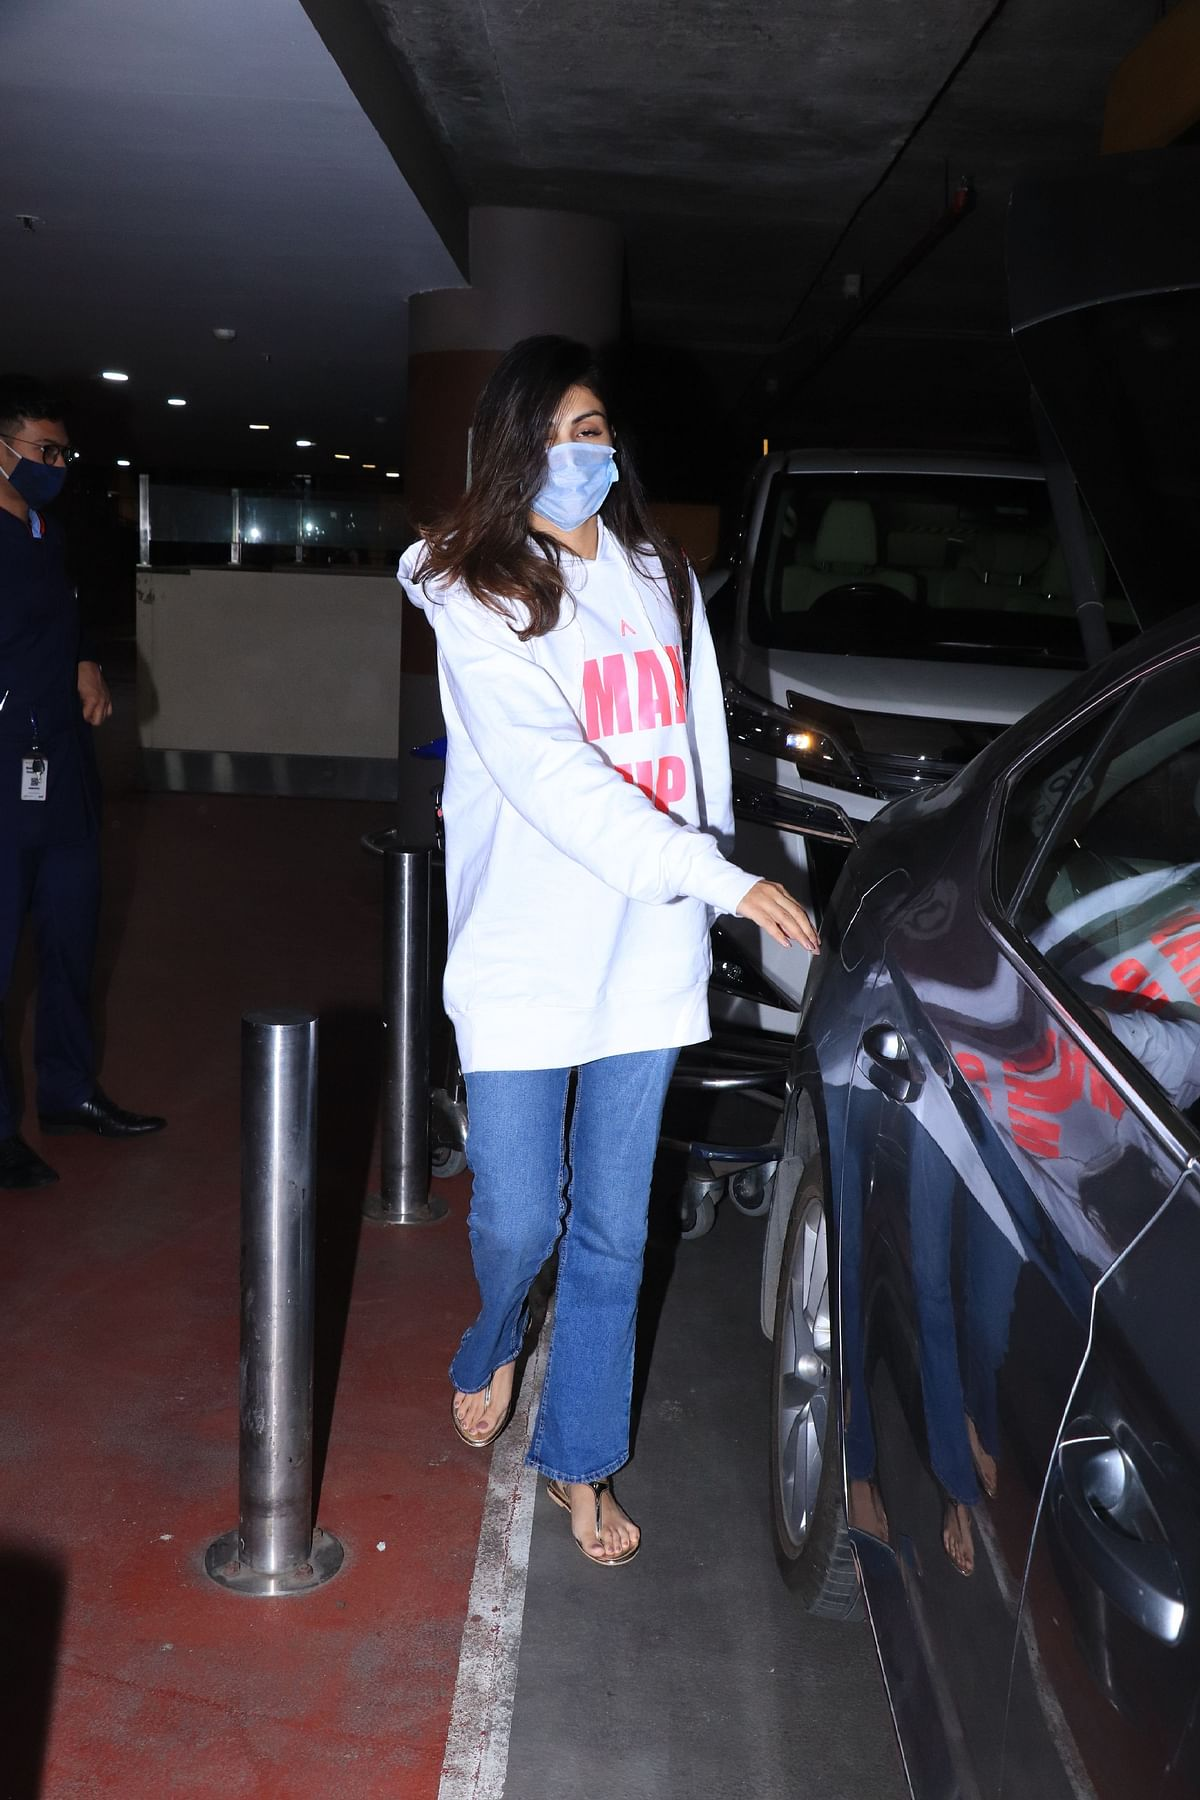 After being snubbed from 'Chehre' poster, Rhea Chakraborty sports a 'Man Up' hoodie that costs Rs 2,500